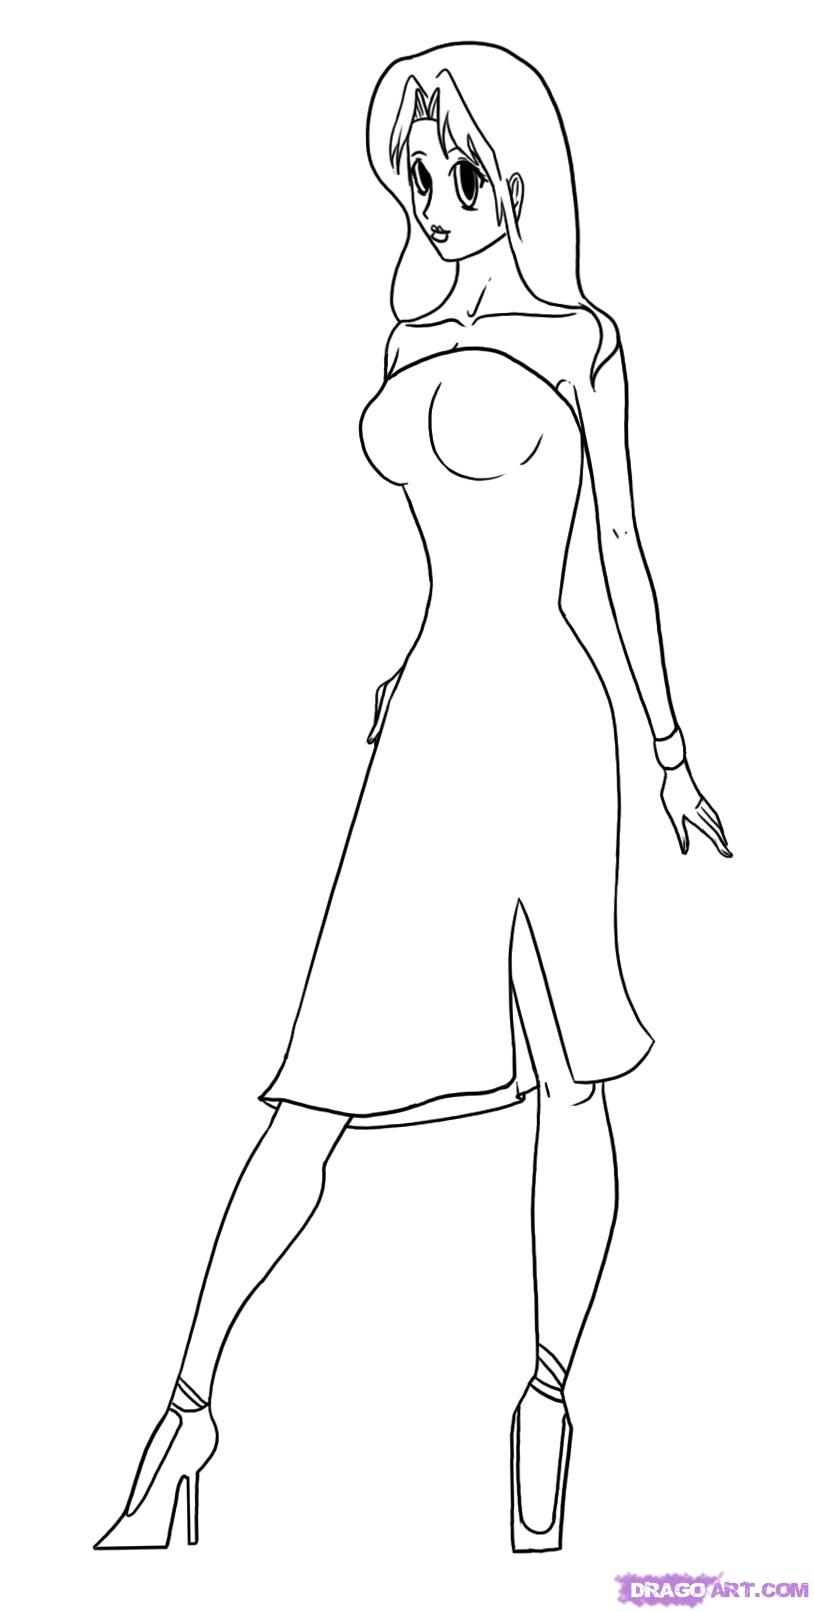 814x1612 Anime Drawing Model 6. How To Draw A Red Dress, Anime Model